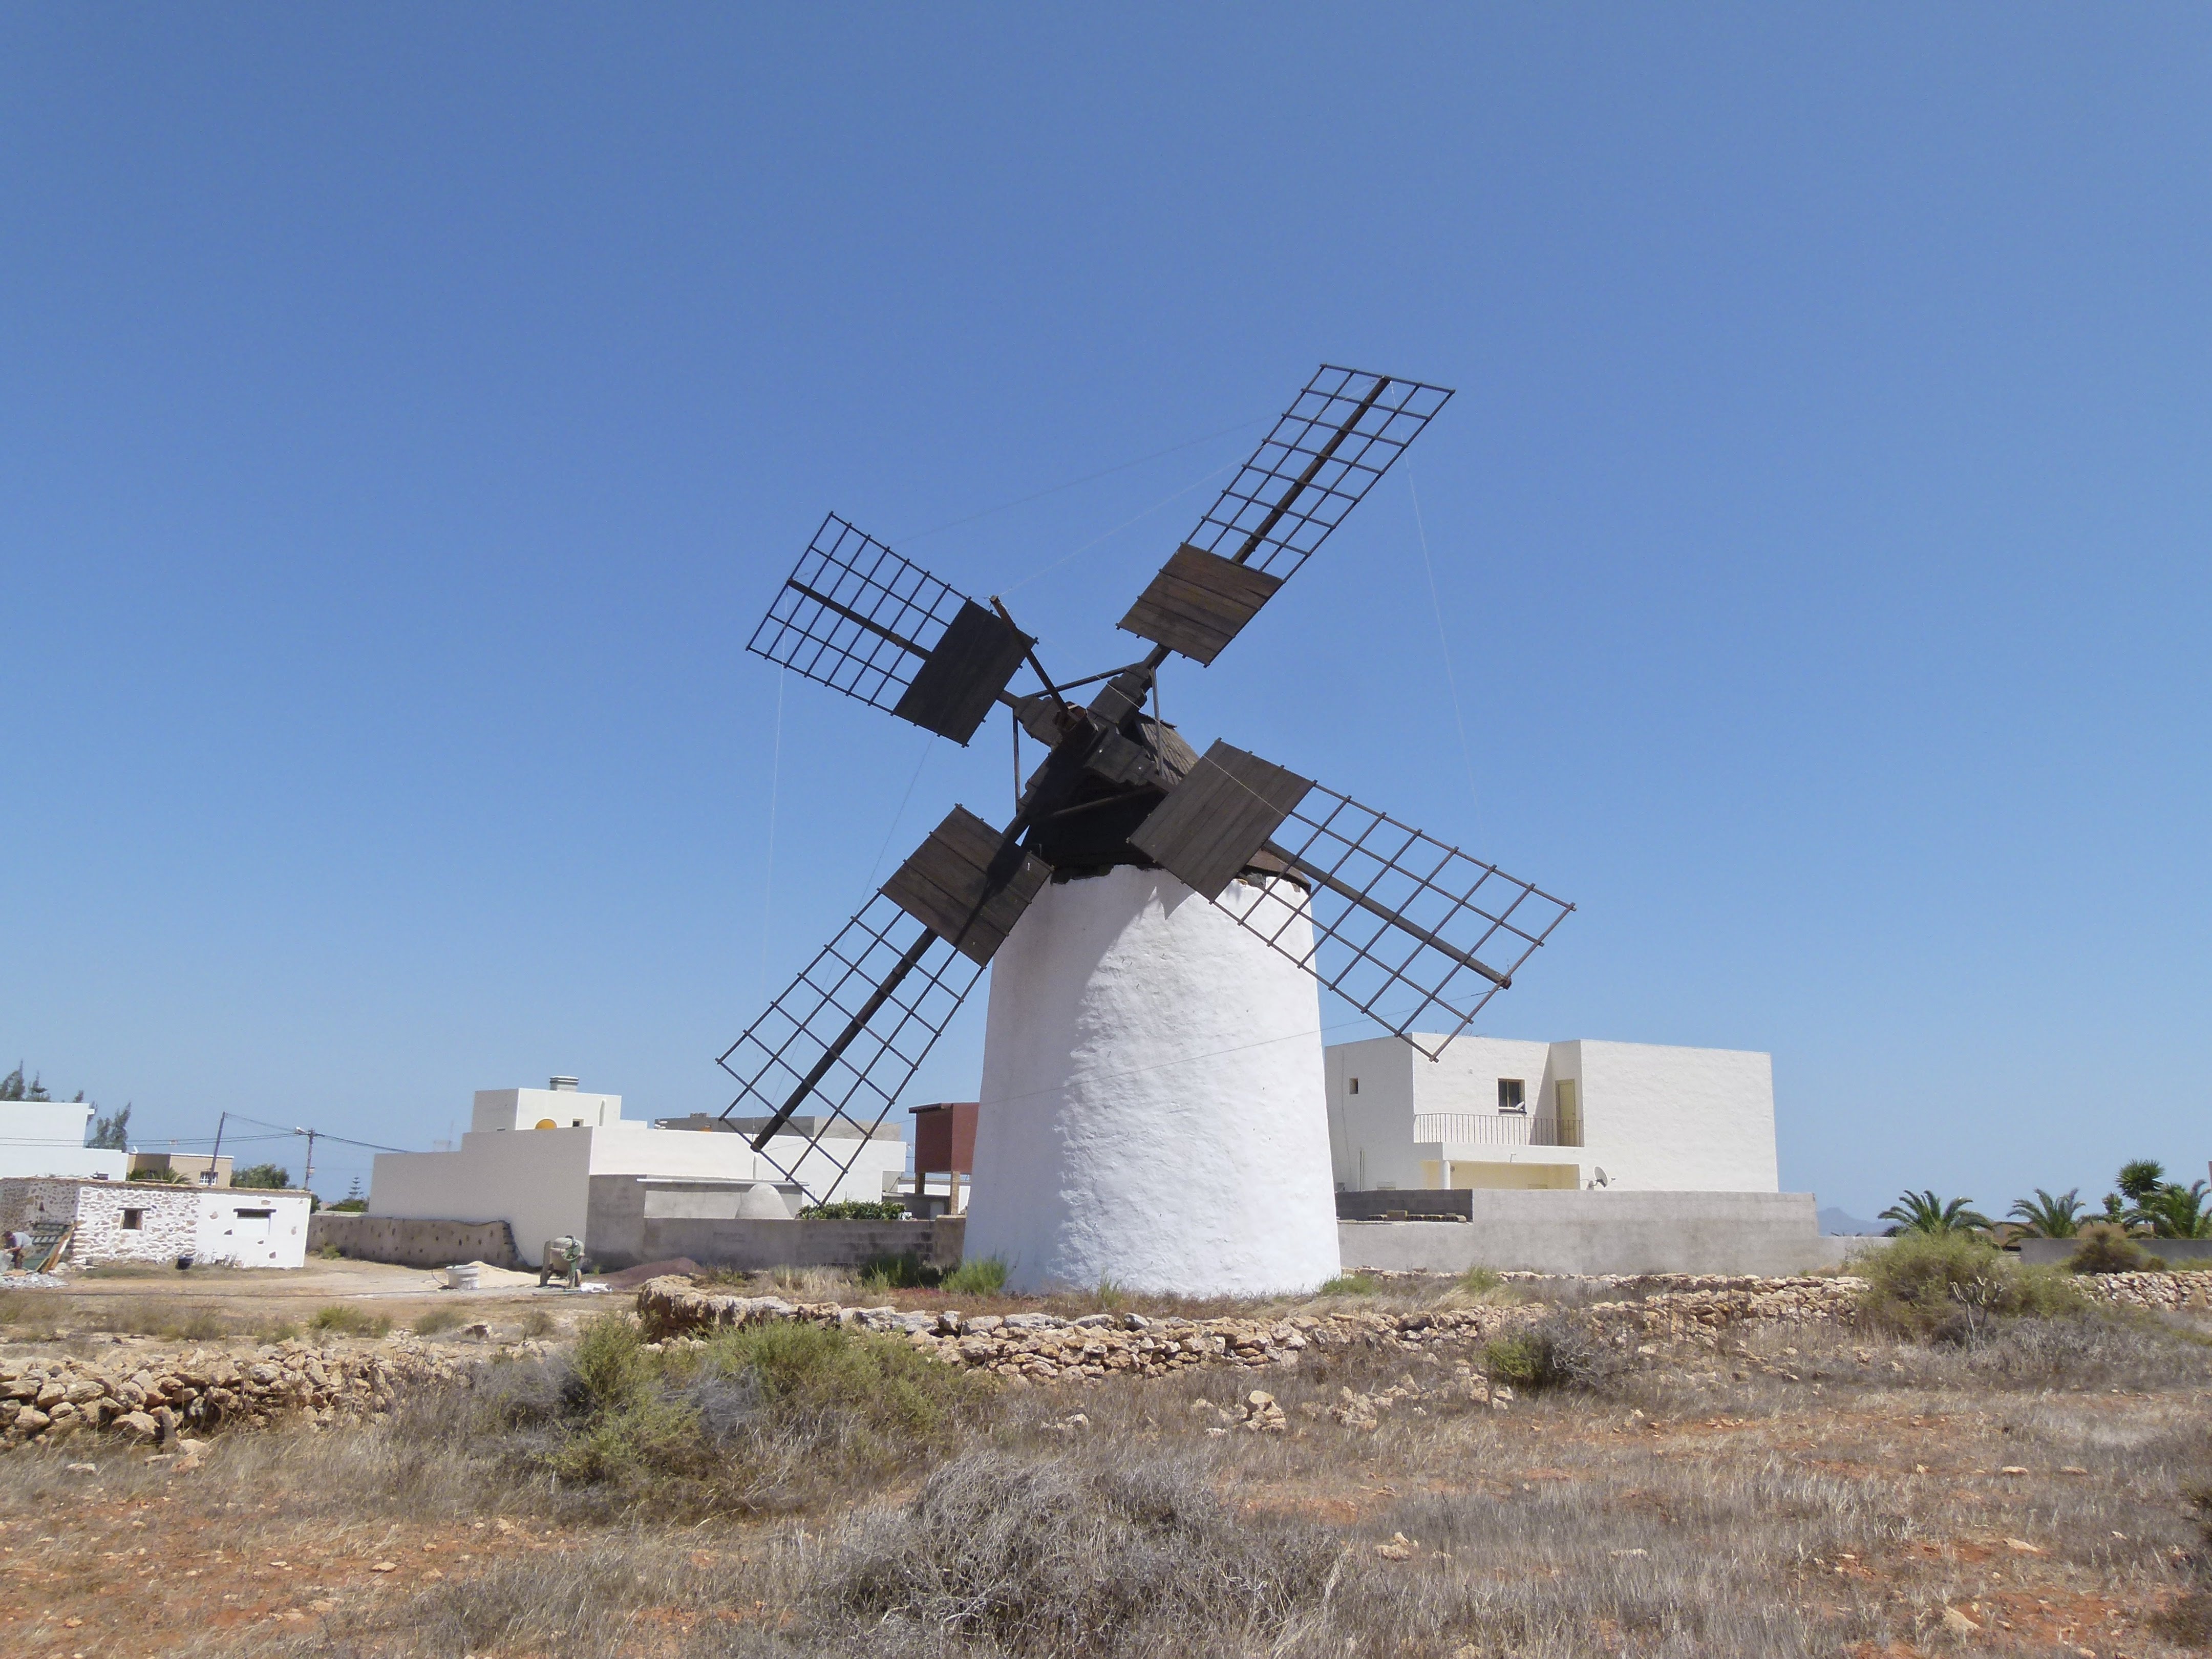 http://upload.wikimedia.org/wikipedia/commons/f/f1/Wind_mill_-_Windm%C3%BChle_-_moulin_%C3%A0_vent_-_Molino_-_Tuineje_-_Fuerteventura_-_Canary_islands_-_Spain_-_02.jpg